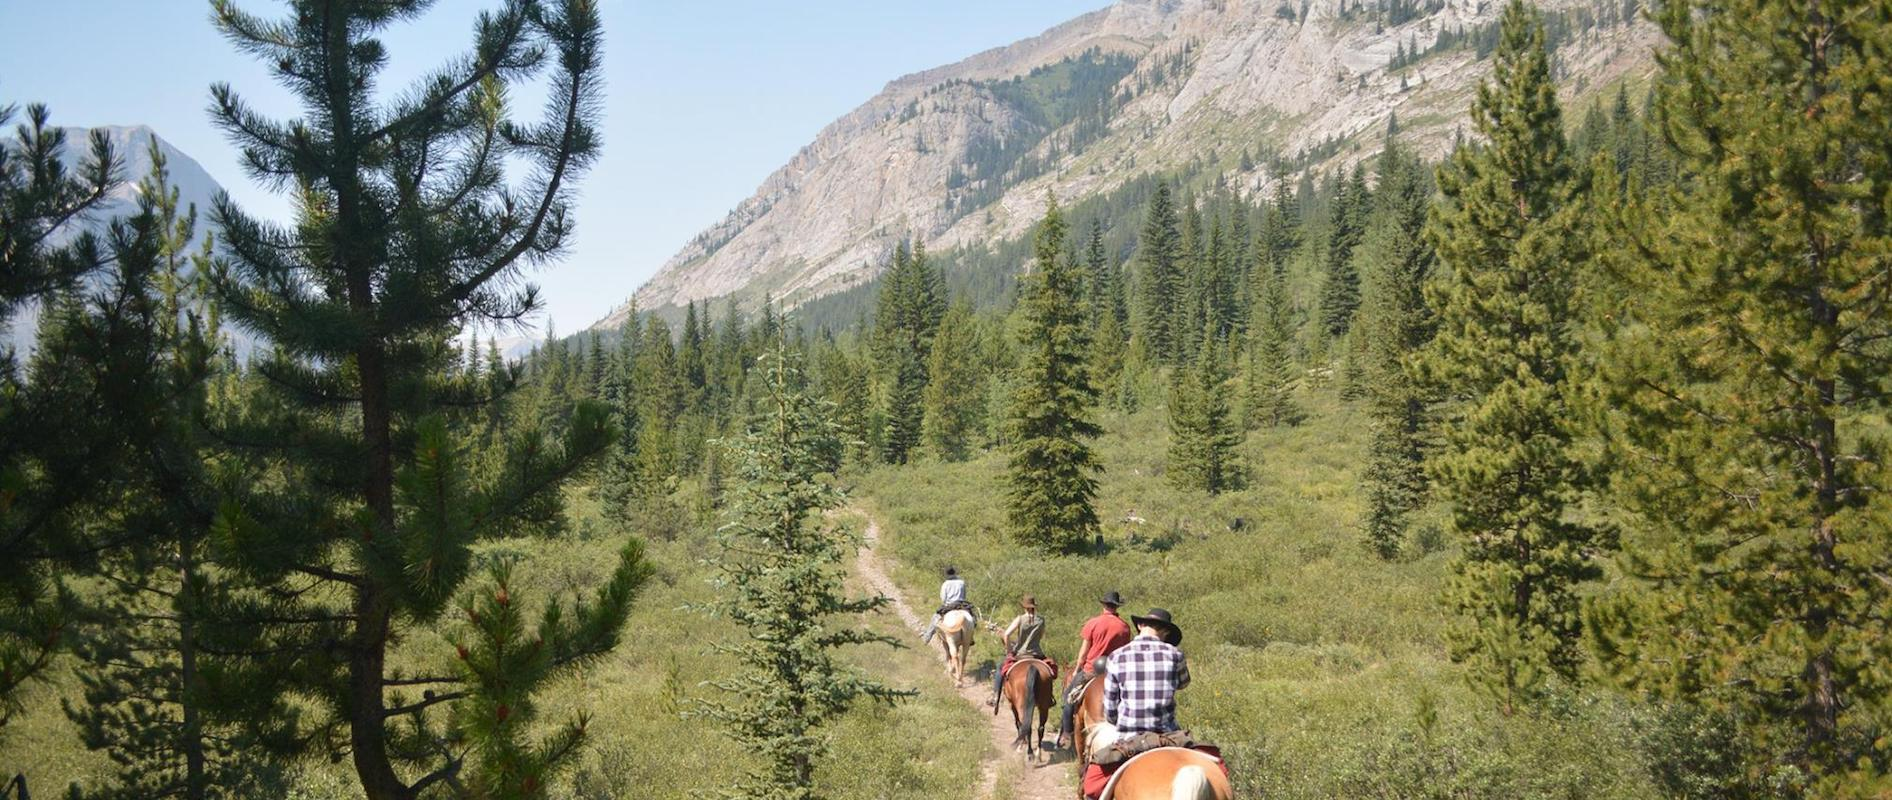 Horseback Riding Pack Trips in the Canadian Rockies